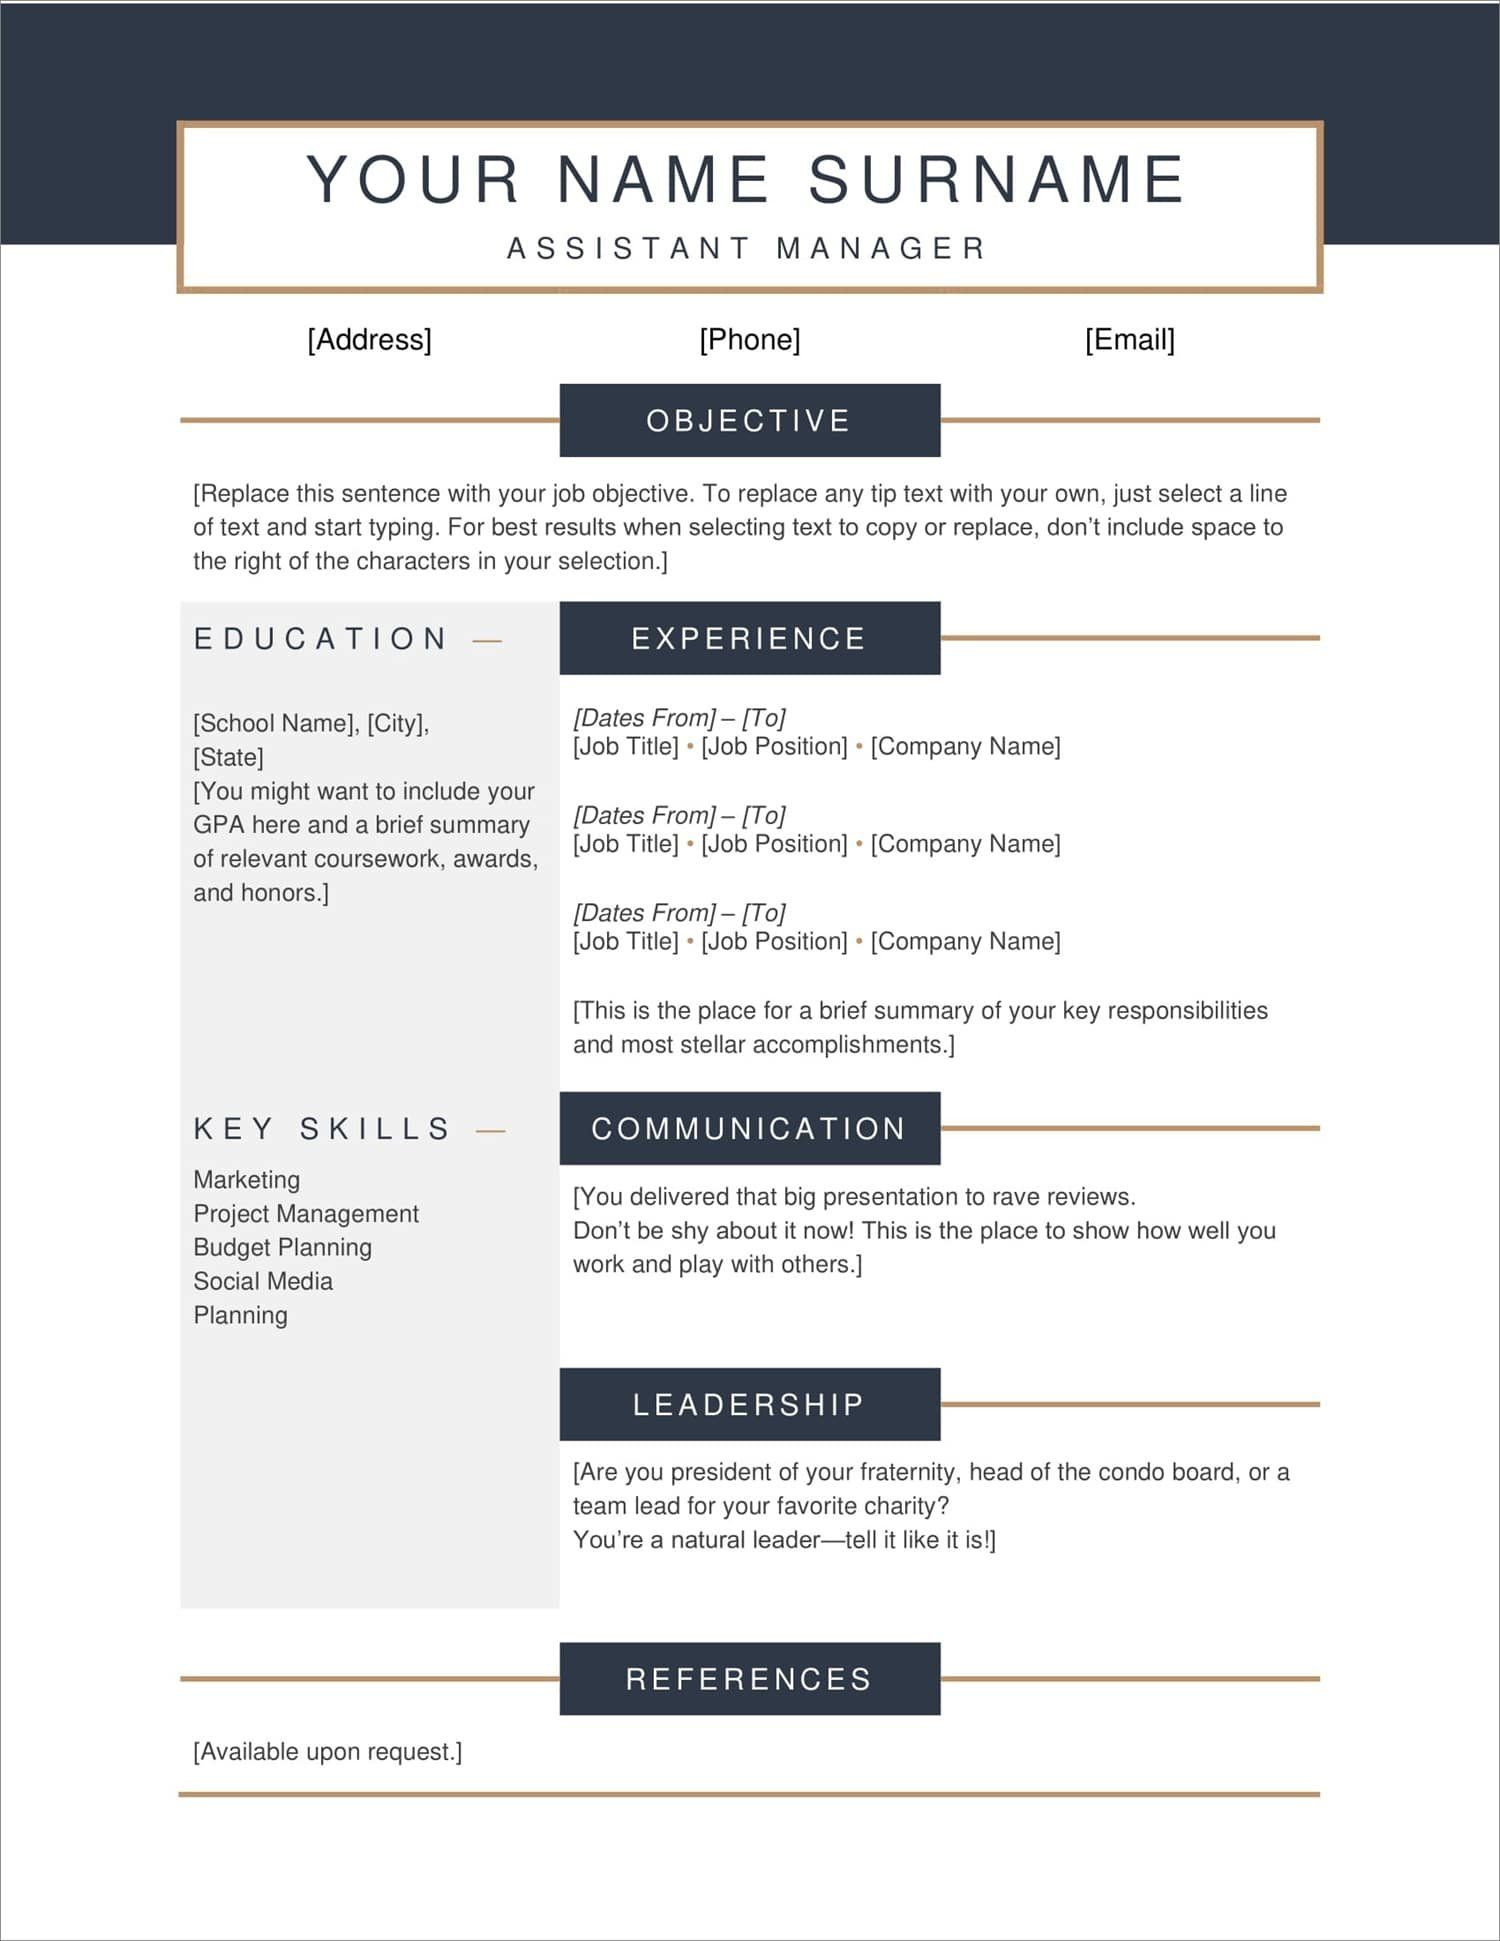 Downloadable Resumes Templates Free in 2020 Downloadable